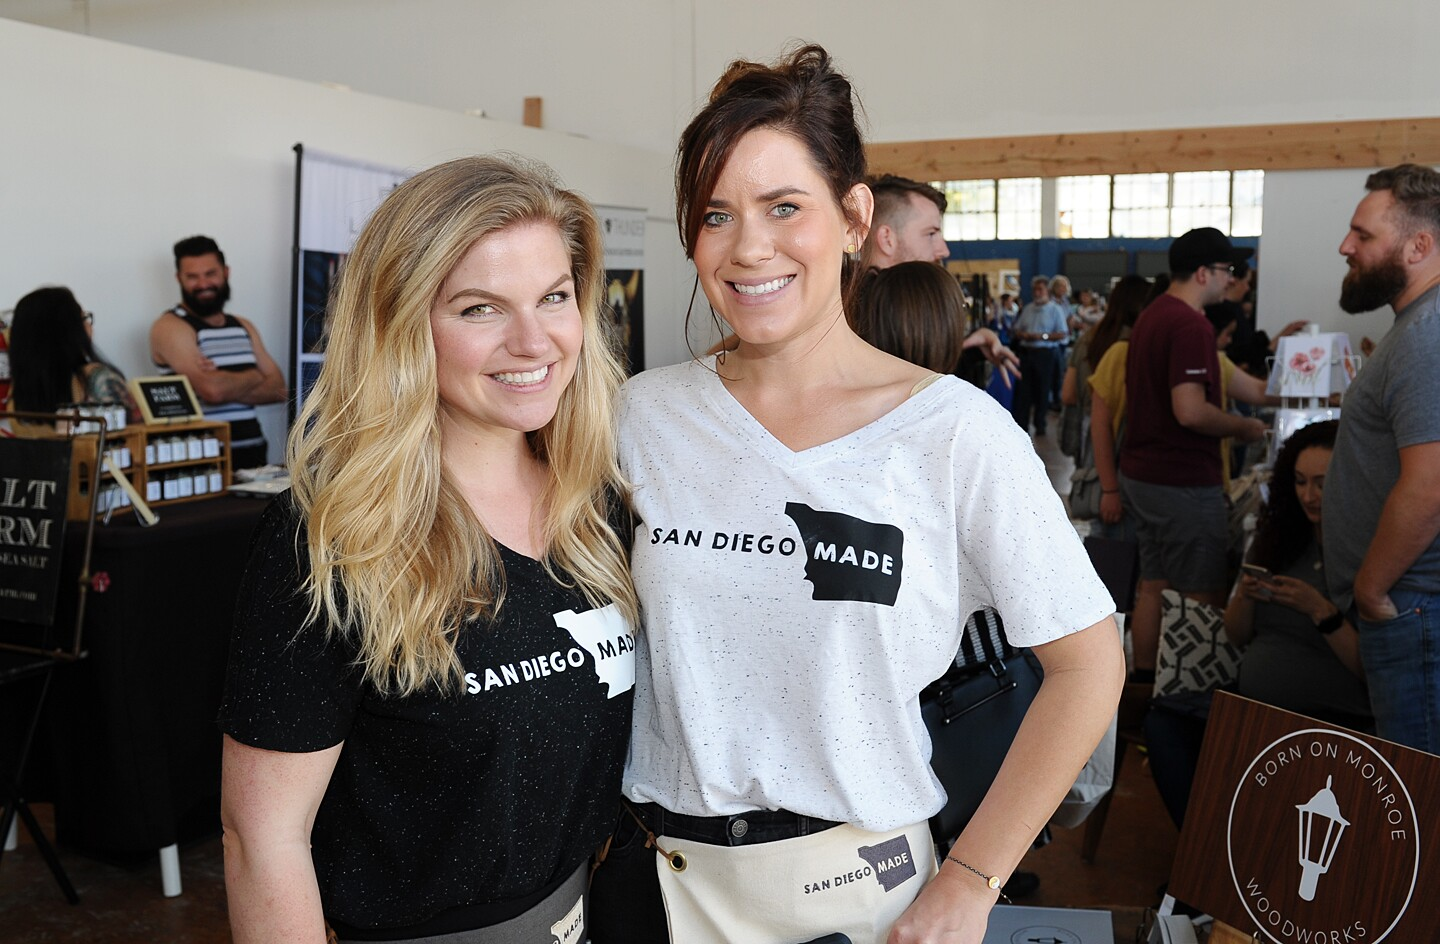 The local creative community has a new place to call home thanks to the grand opening of the San Diego Made Factory in Logan Heights on Saturday, May 4, 2019.